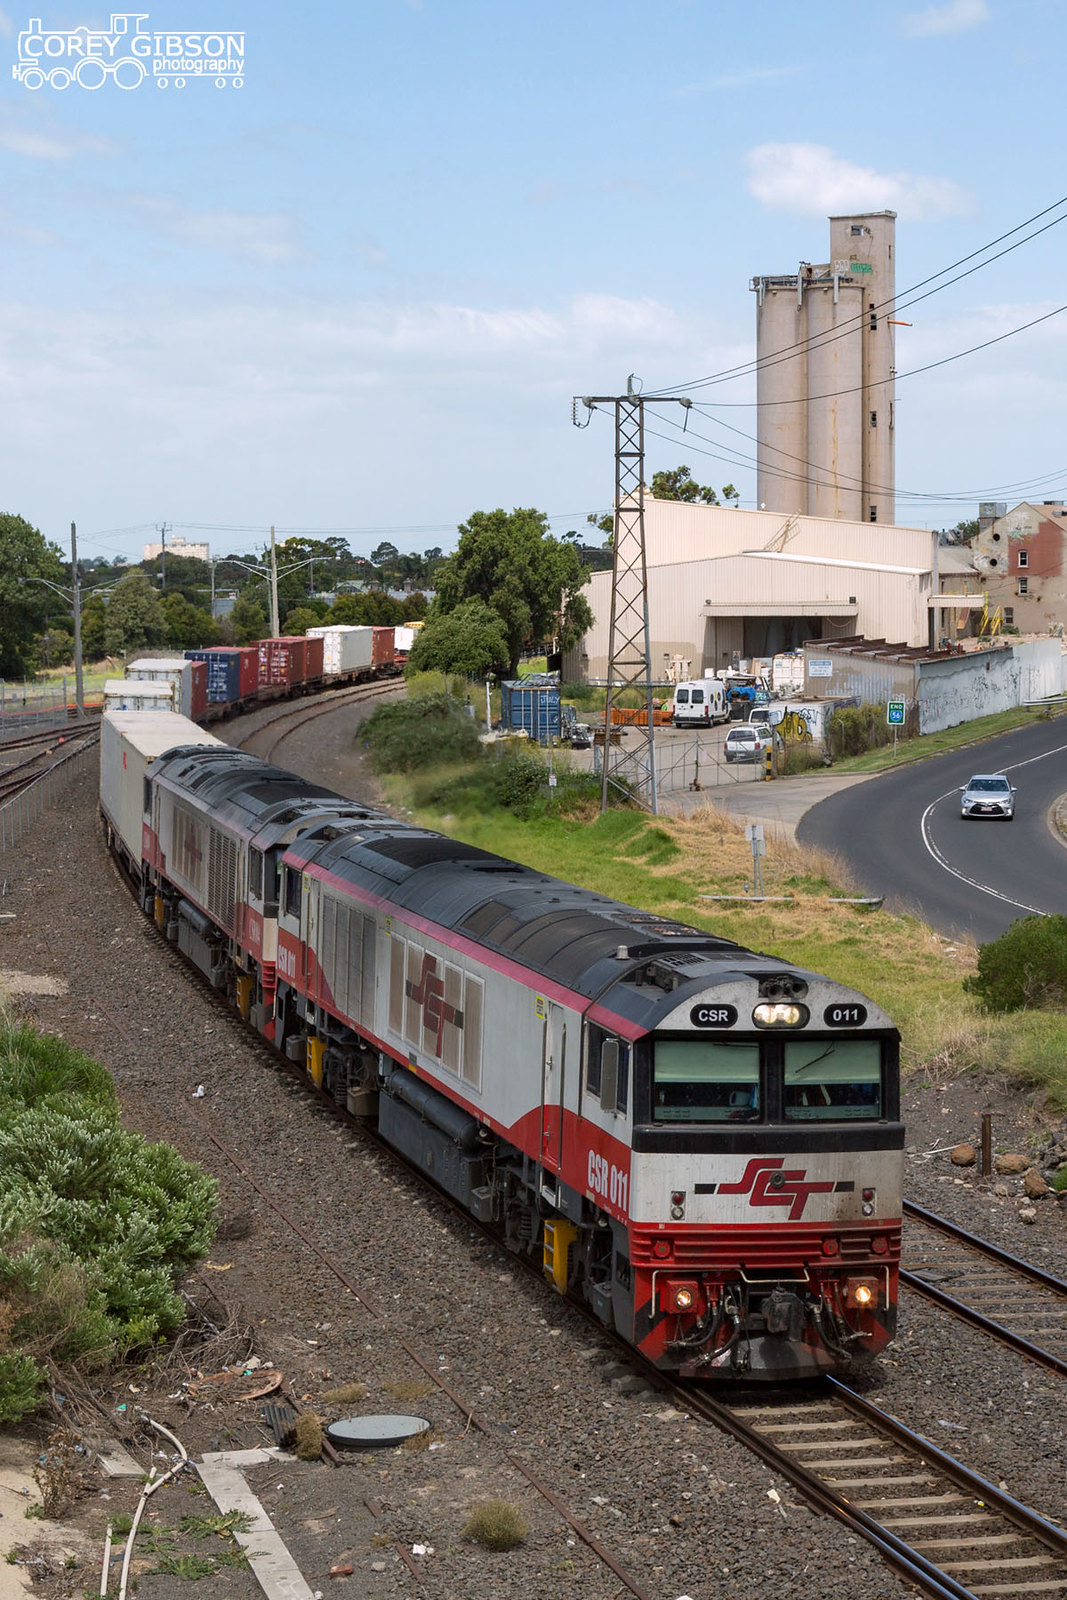 CSR011 & CSR004 with the up #7922V Dooen freight as it passes through Spotswood by Corey Gibson